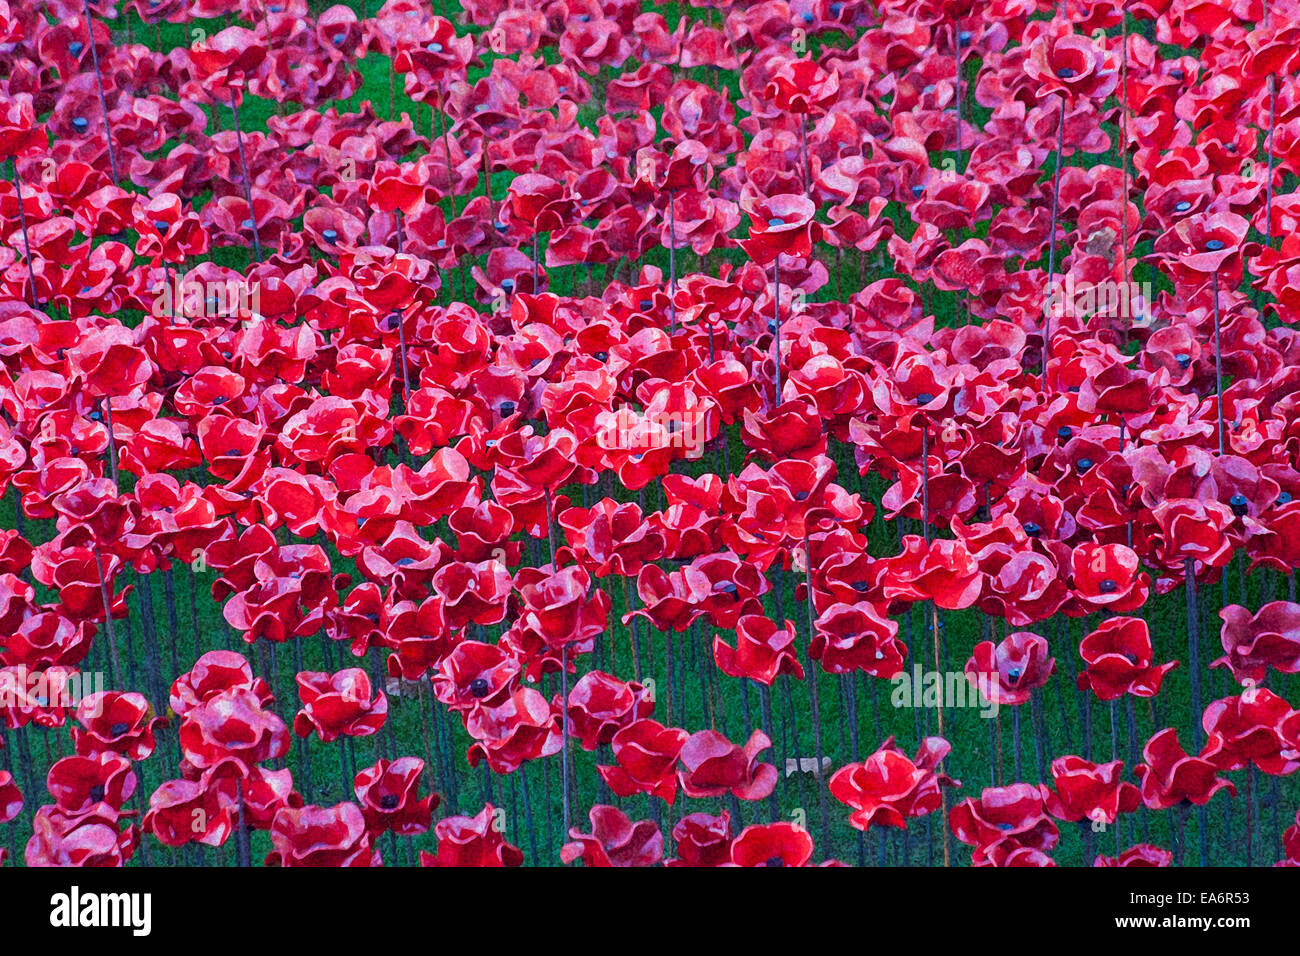 Ceramic poppies of Blood Swept Lands and Seas of Red at Tower of London to mark centenary of World War 1 - Stock Image